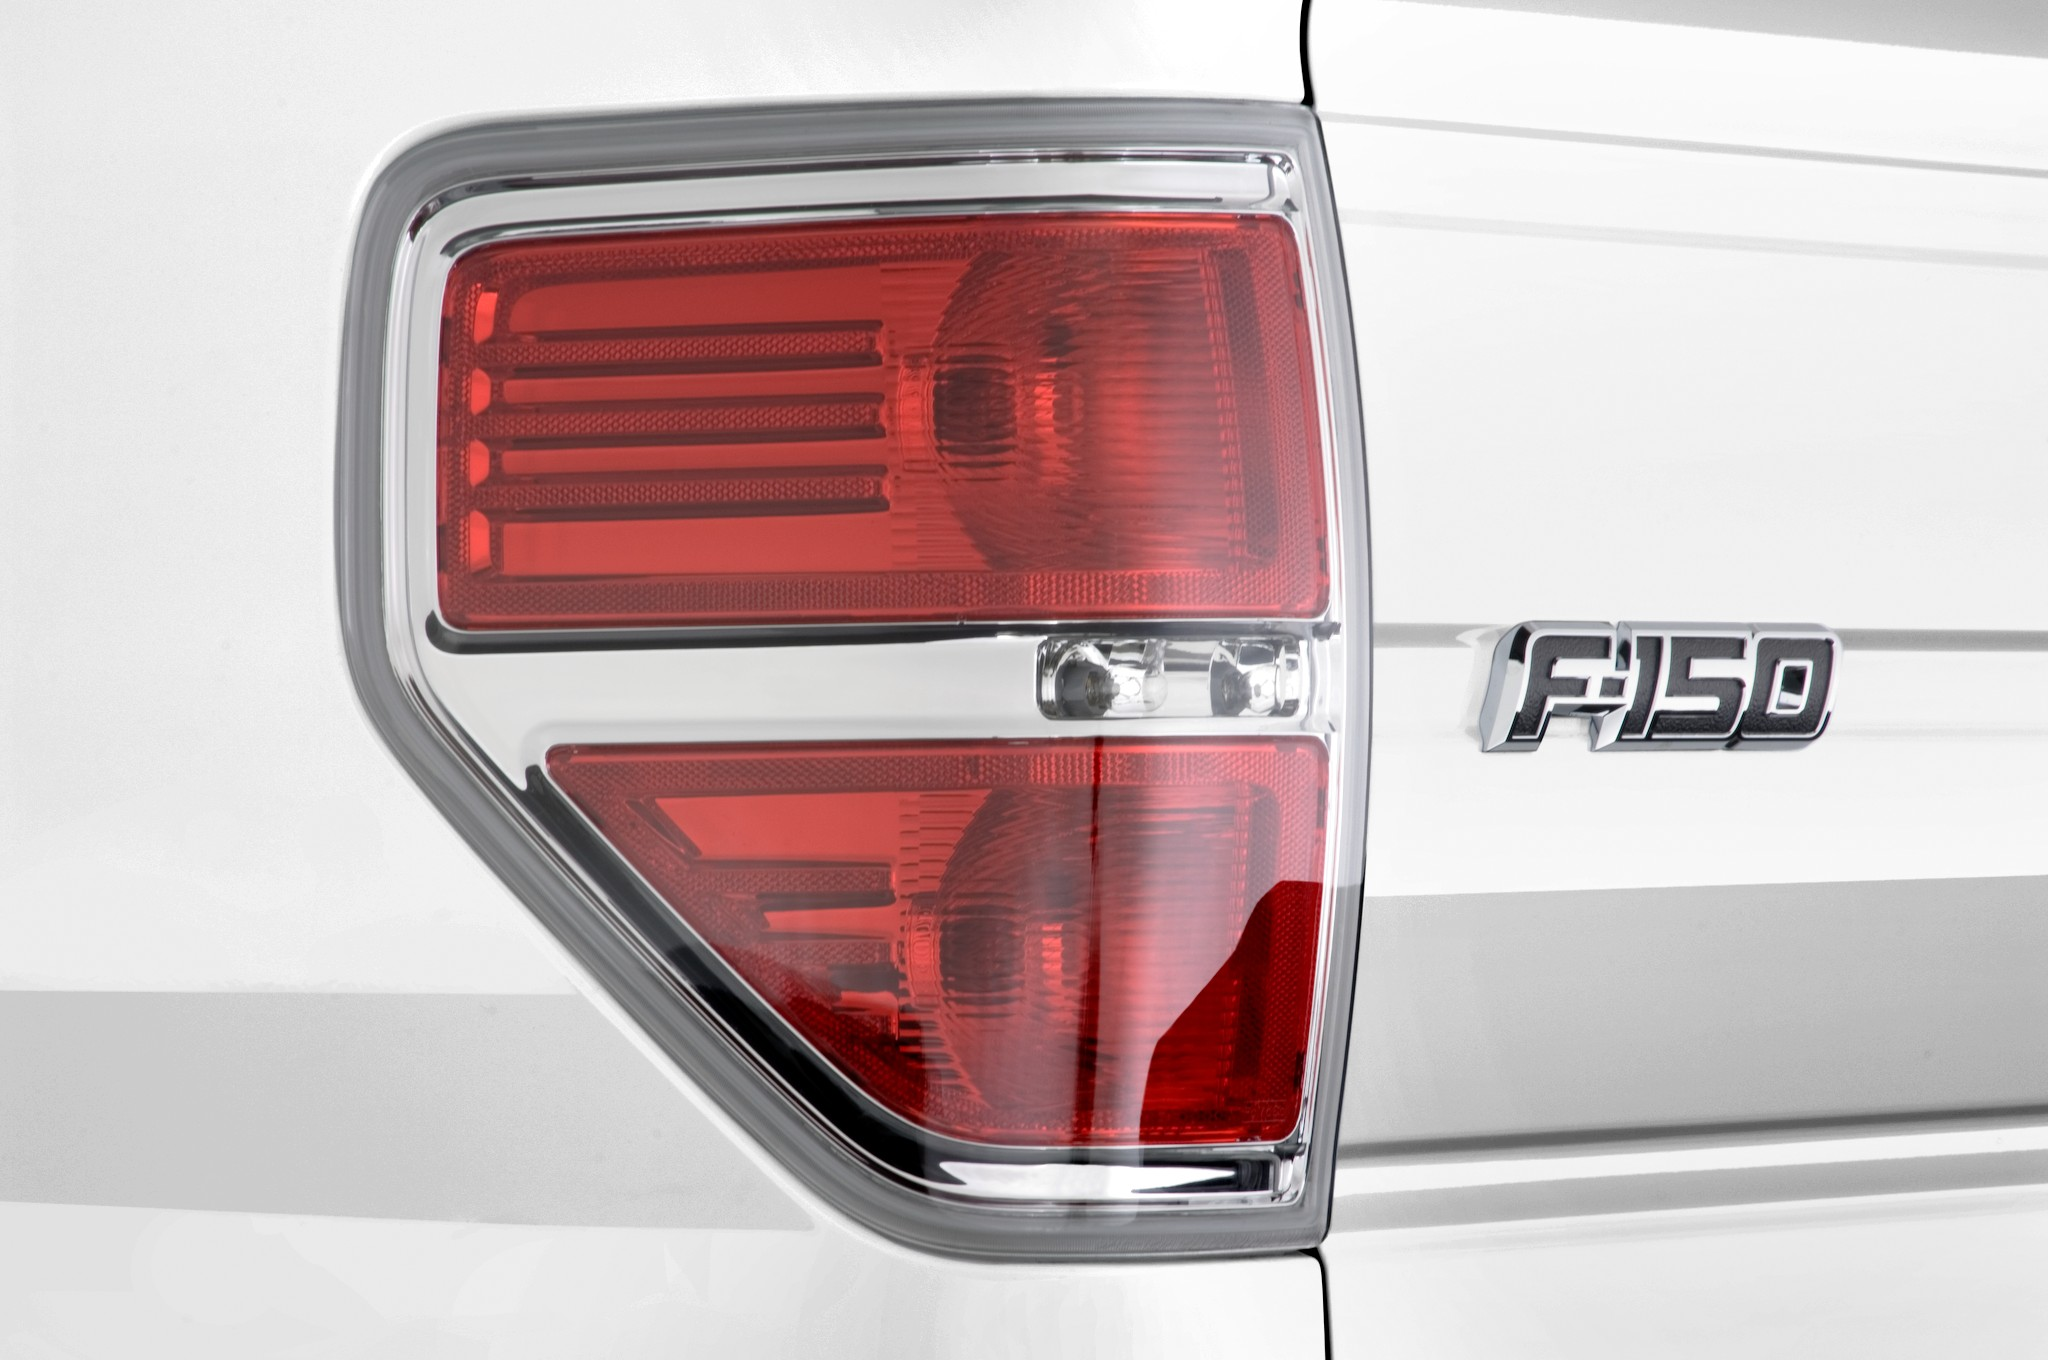 2010 F150 Tail Lights Diagram Wiring Library Honda Ridgeline Light Ford New Image 13 107